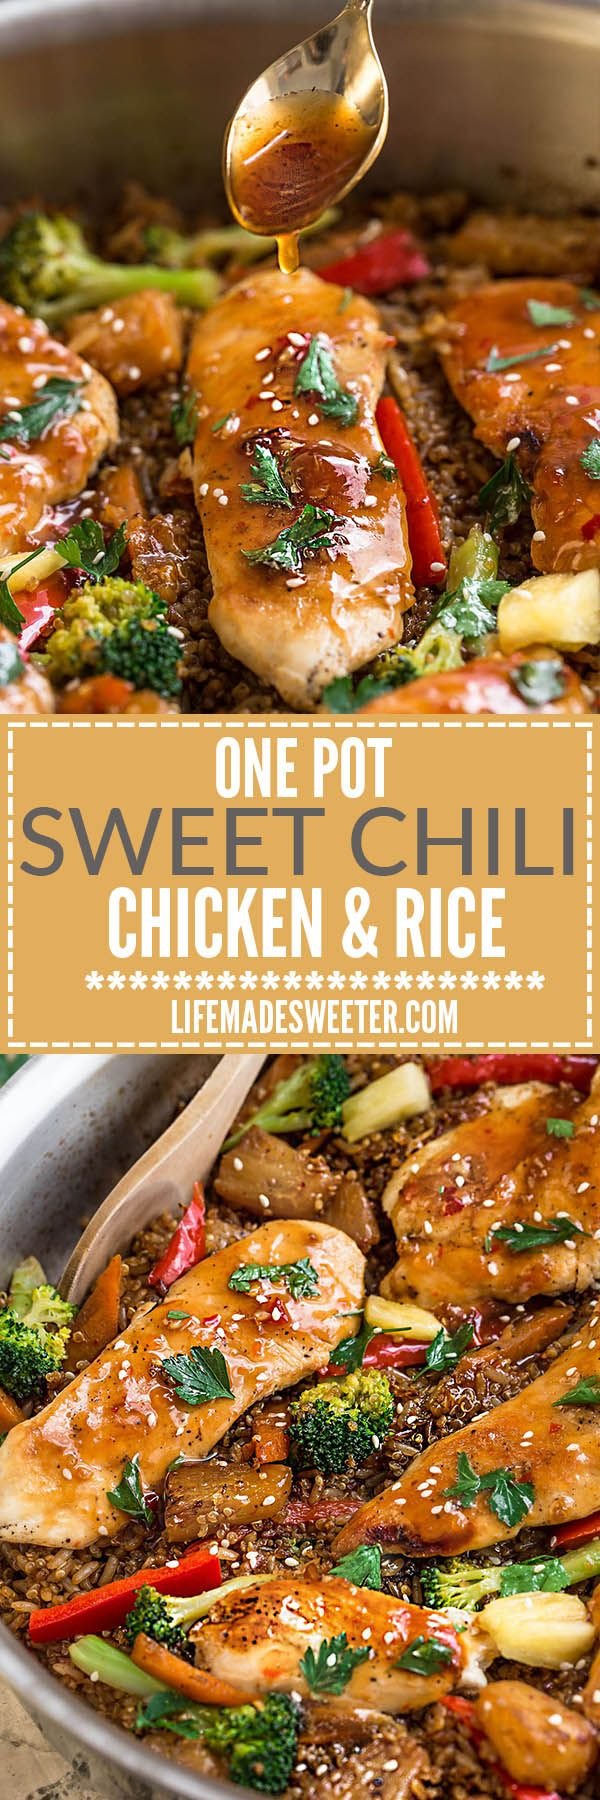 One Pot Sweet Chili Chicken makes the perfect easy weeknight meal. Best of all, takes just 30 minutes to make in entirely one pan with a delicious sweet and spicy sticky sauce over tender chicken and healthy vegetables!